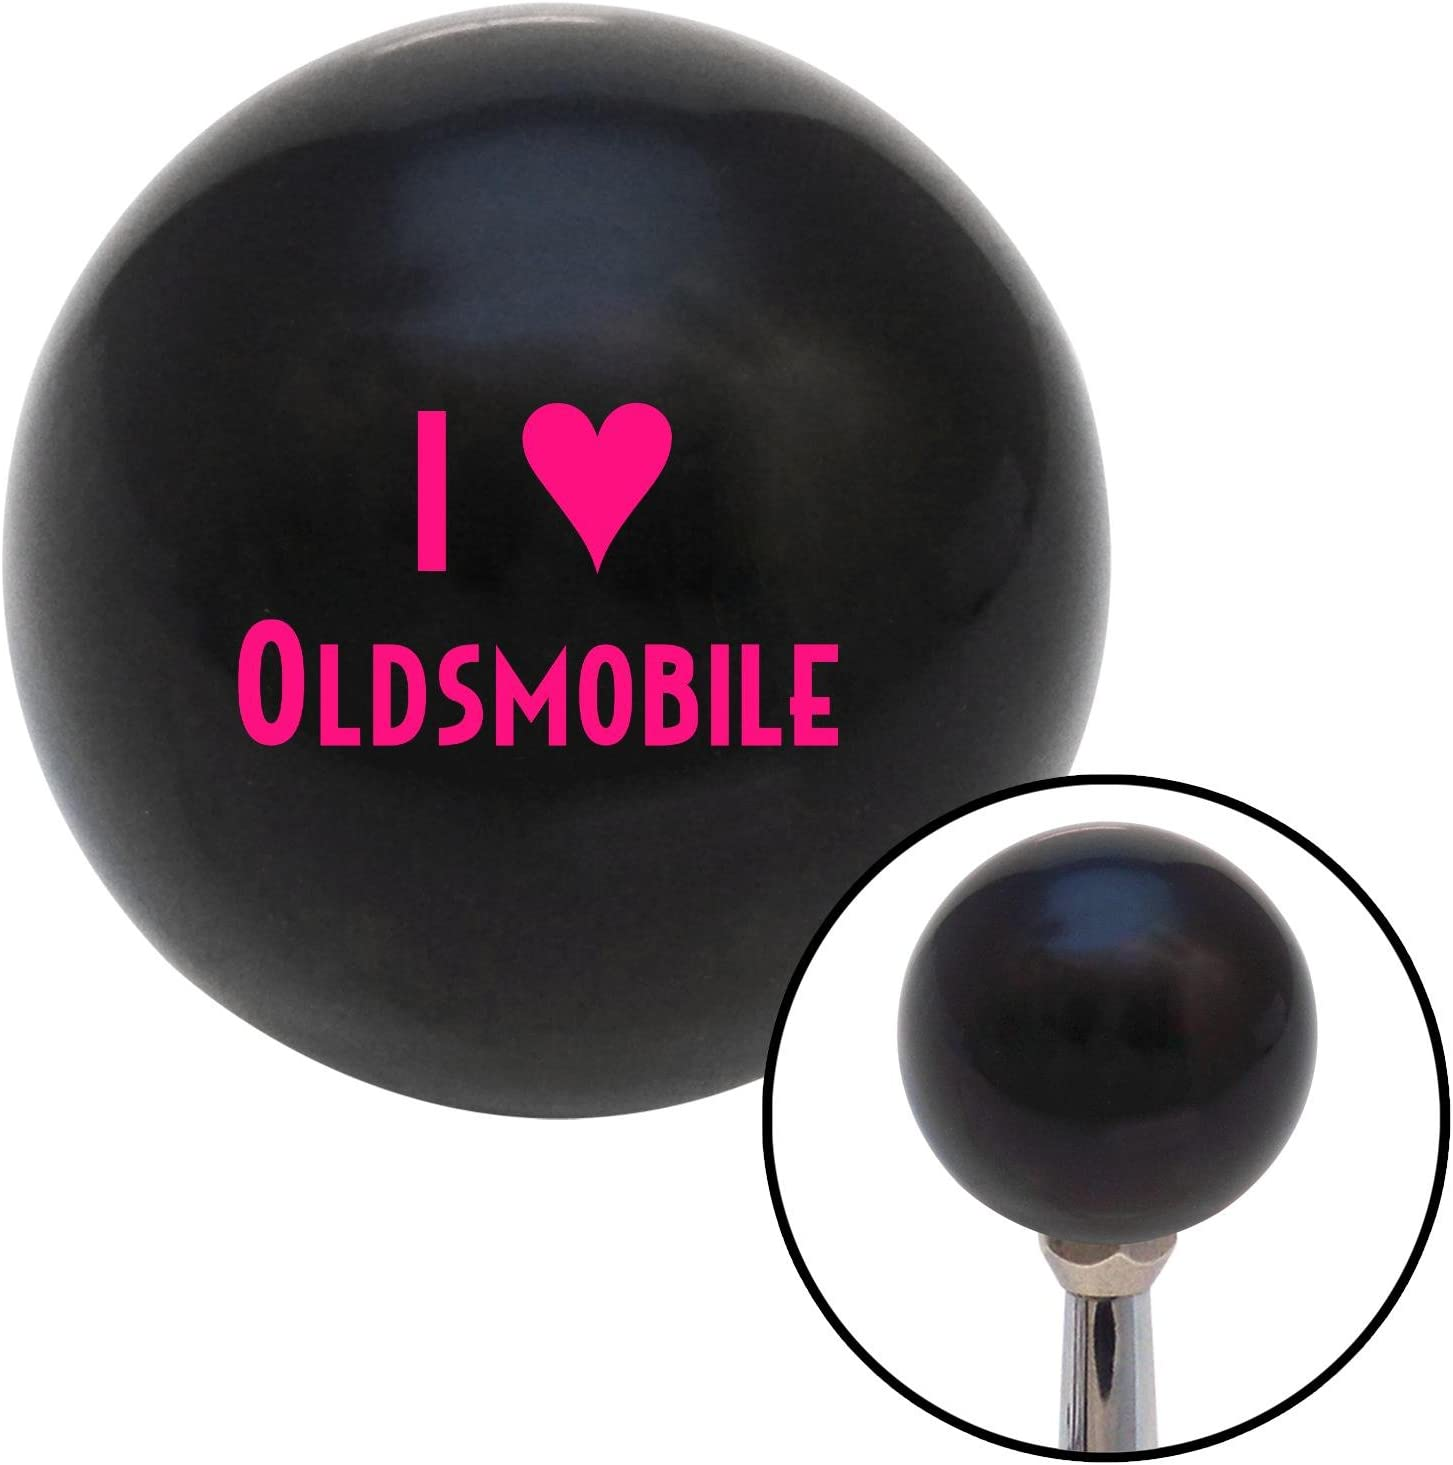 Pink I 3 Oldsmobile American Shifter 105802 Black Shift Knob with M16 x 1.5 Insert